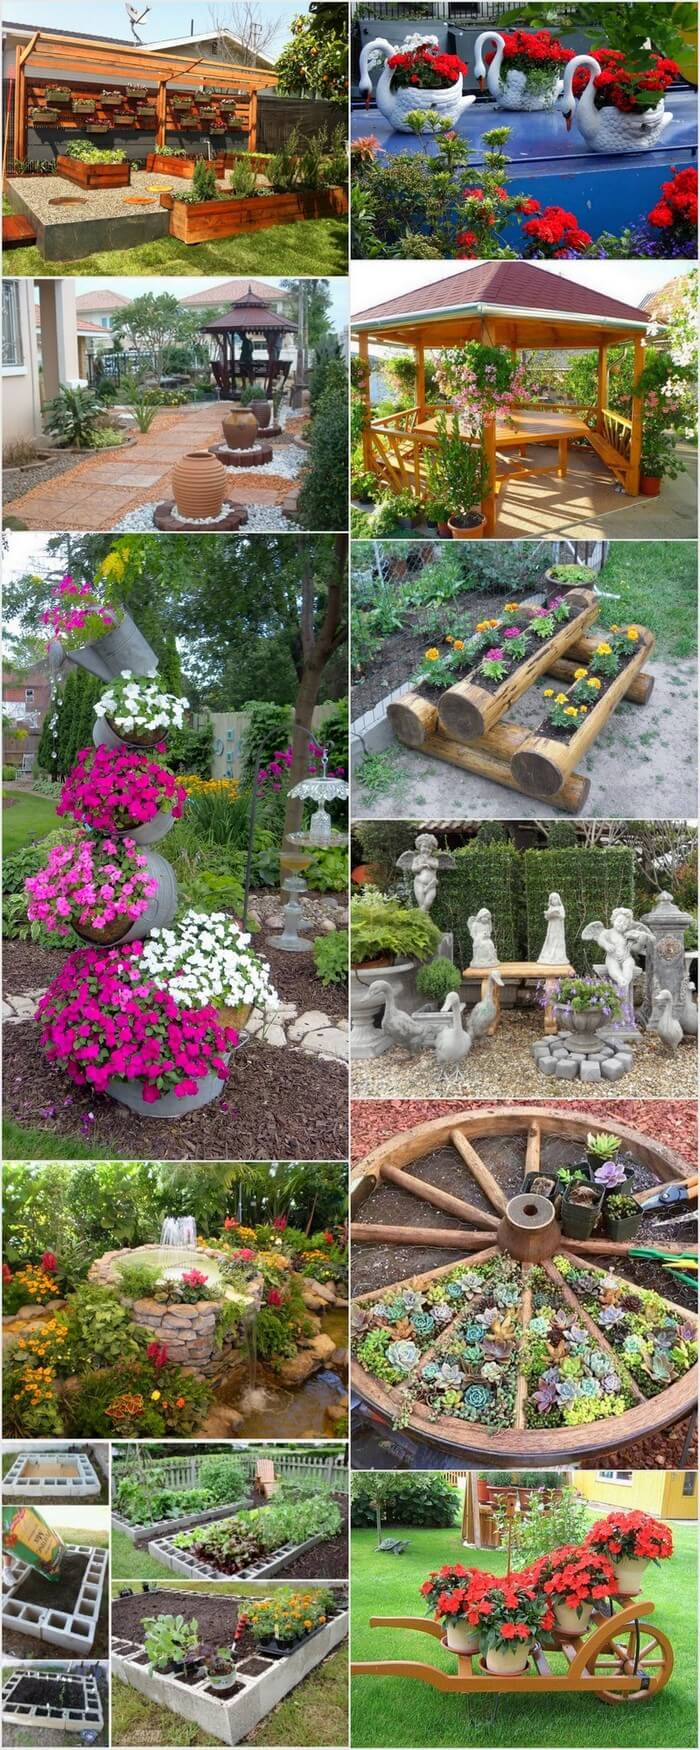 Pretty wonderful diy garden decor ideas recycled things Diy home design ideas pictures landscaping